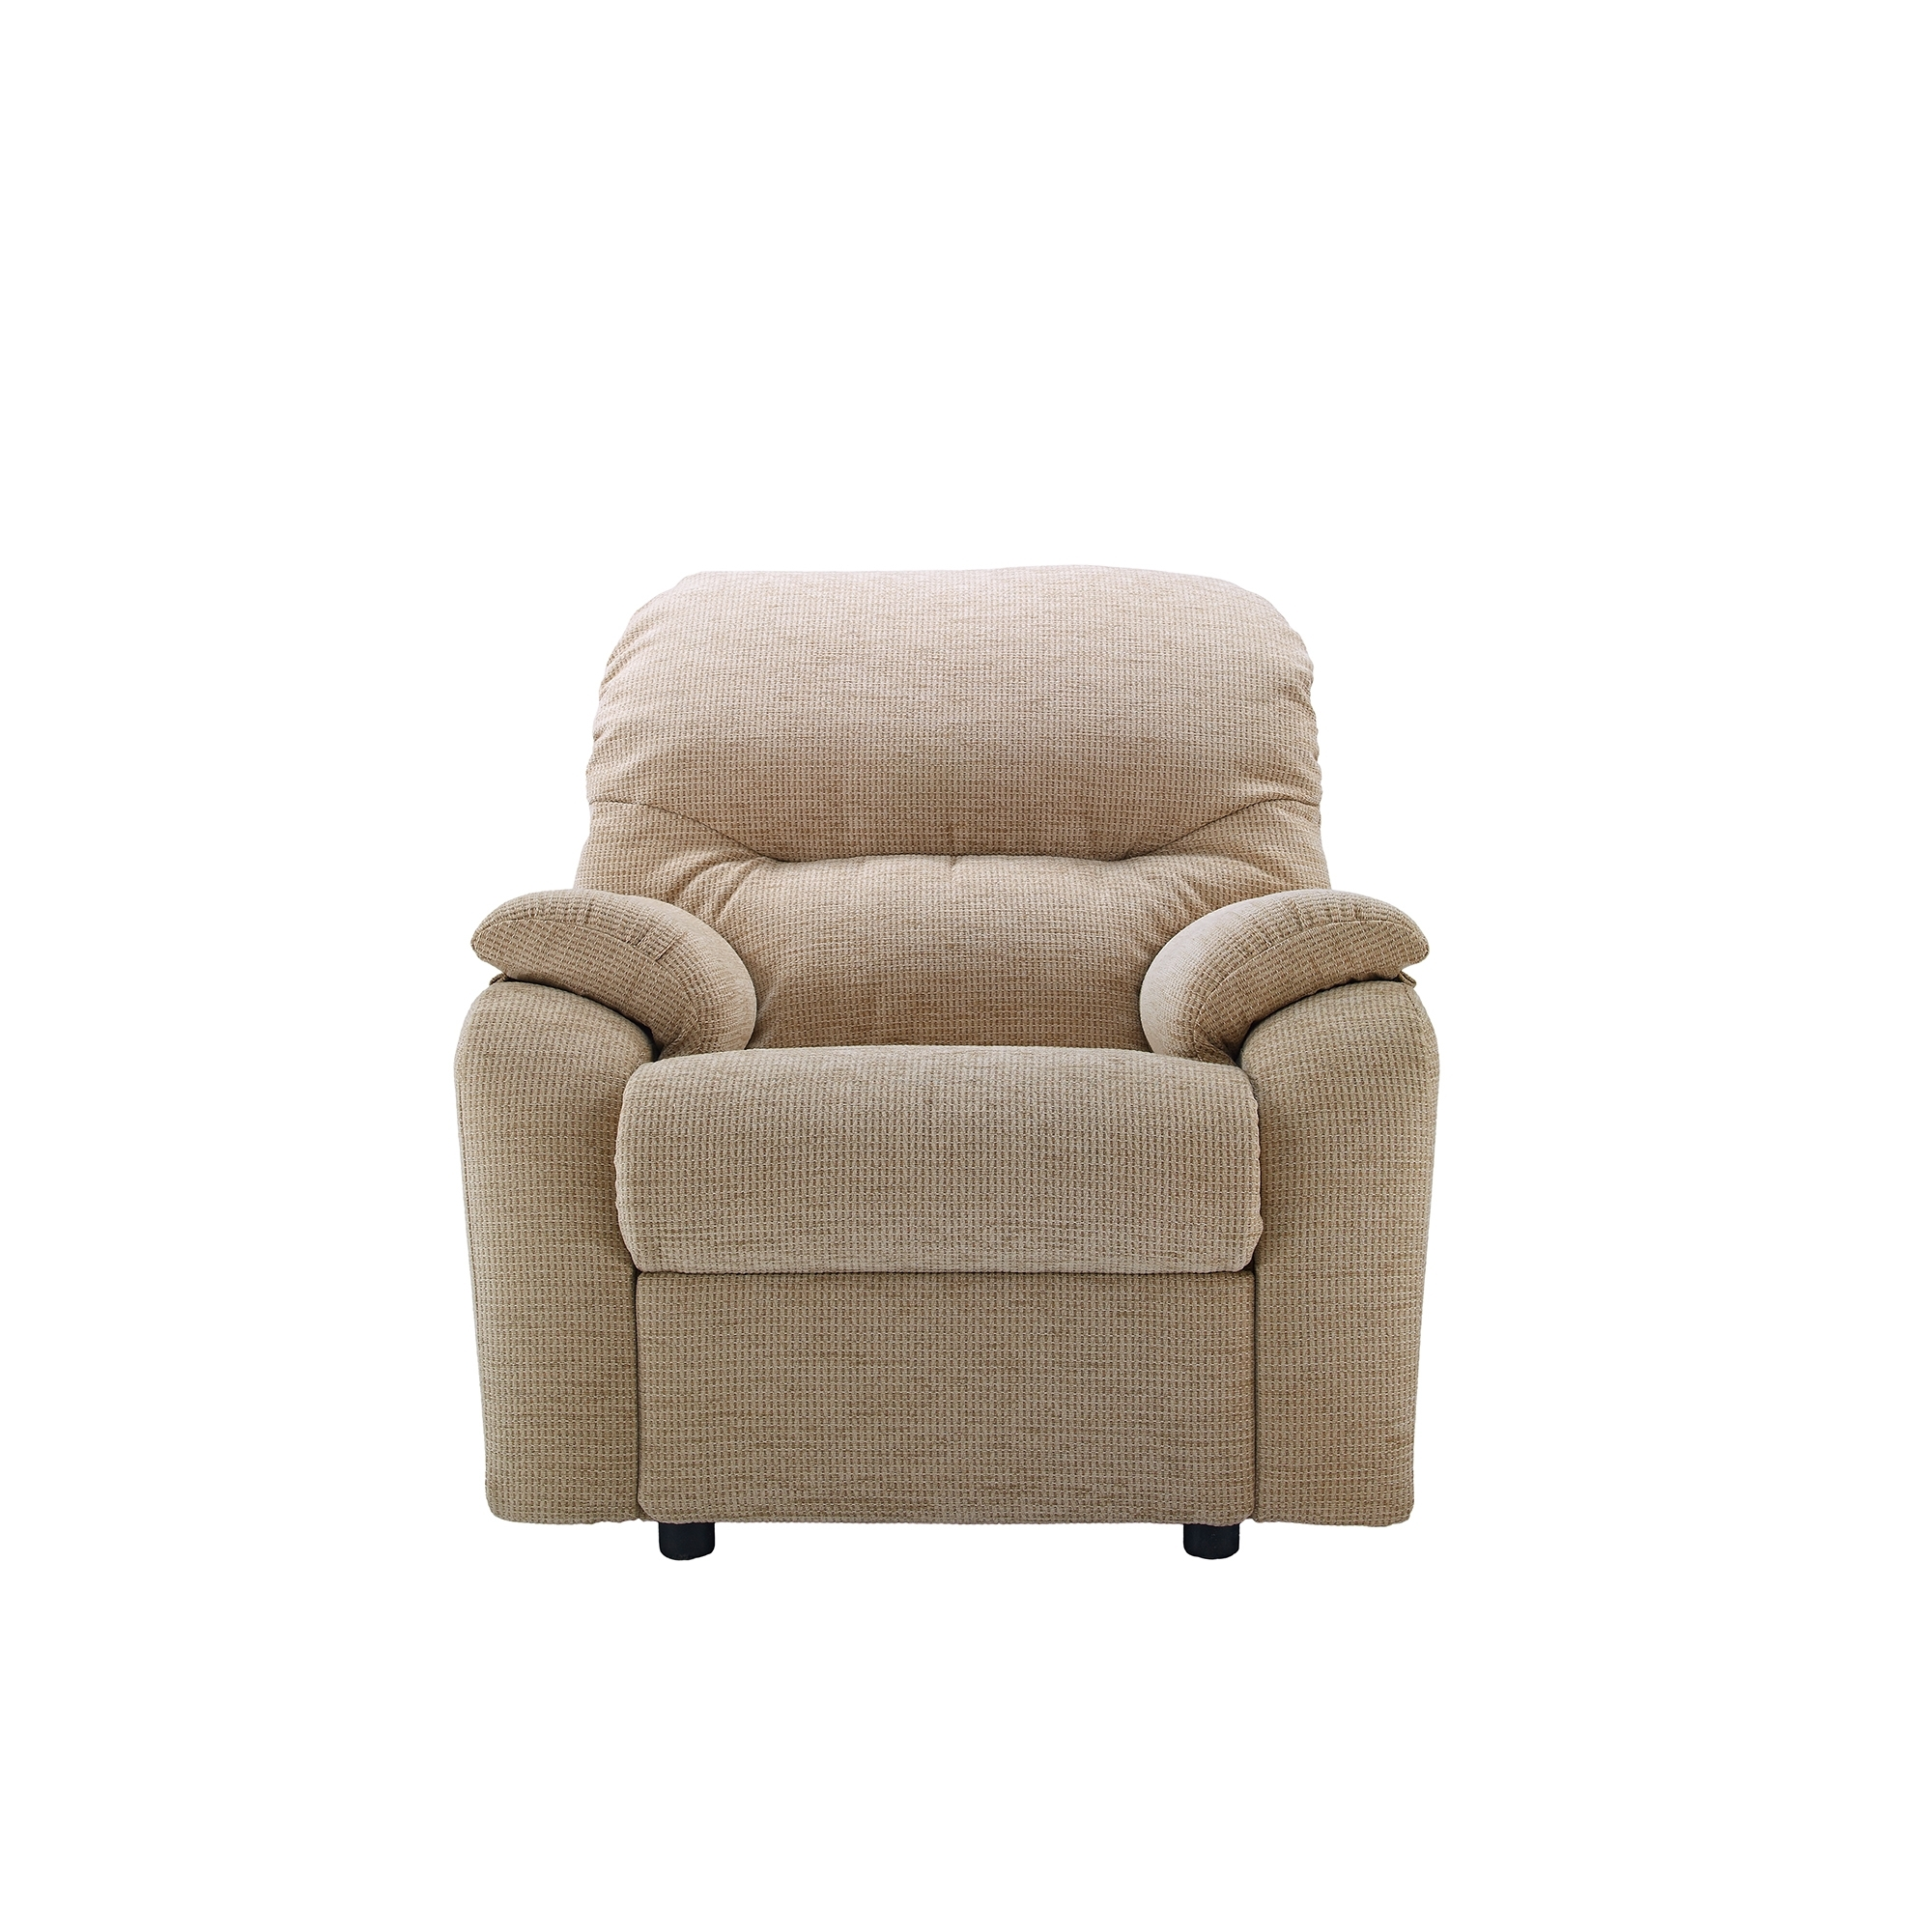 G Plan Mistral Armchair - G Plan Upholstery - Cookes Furniture